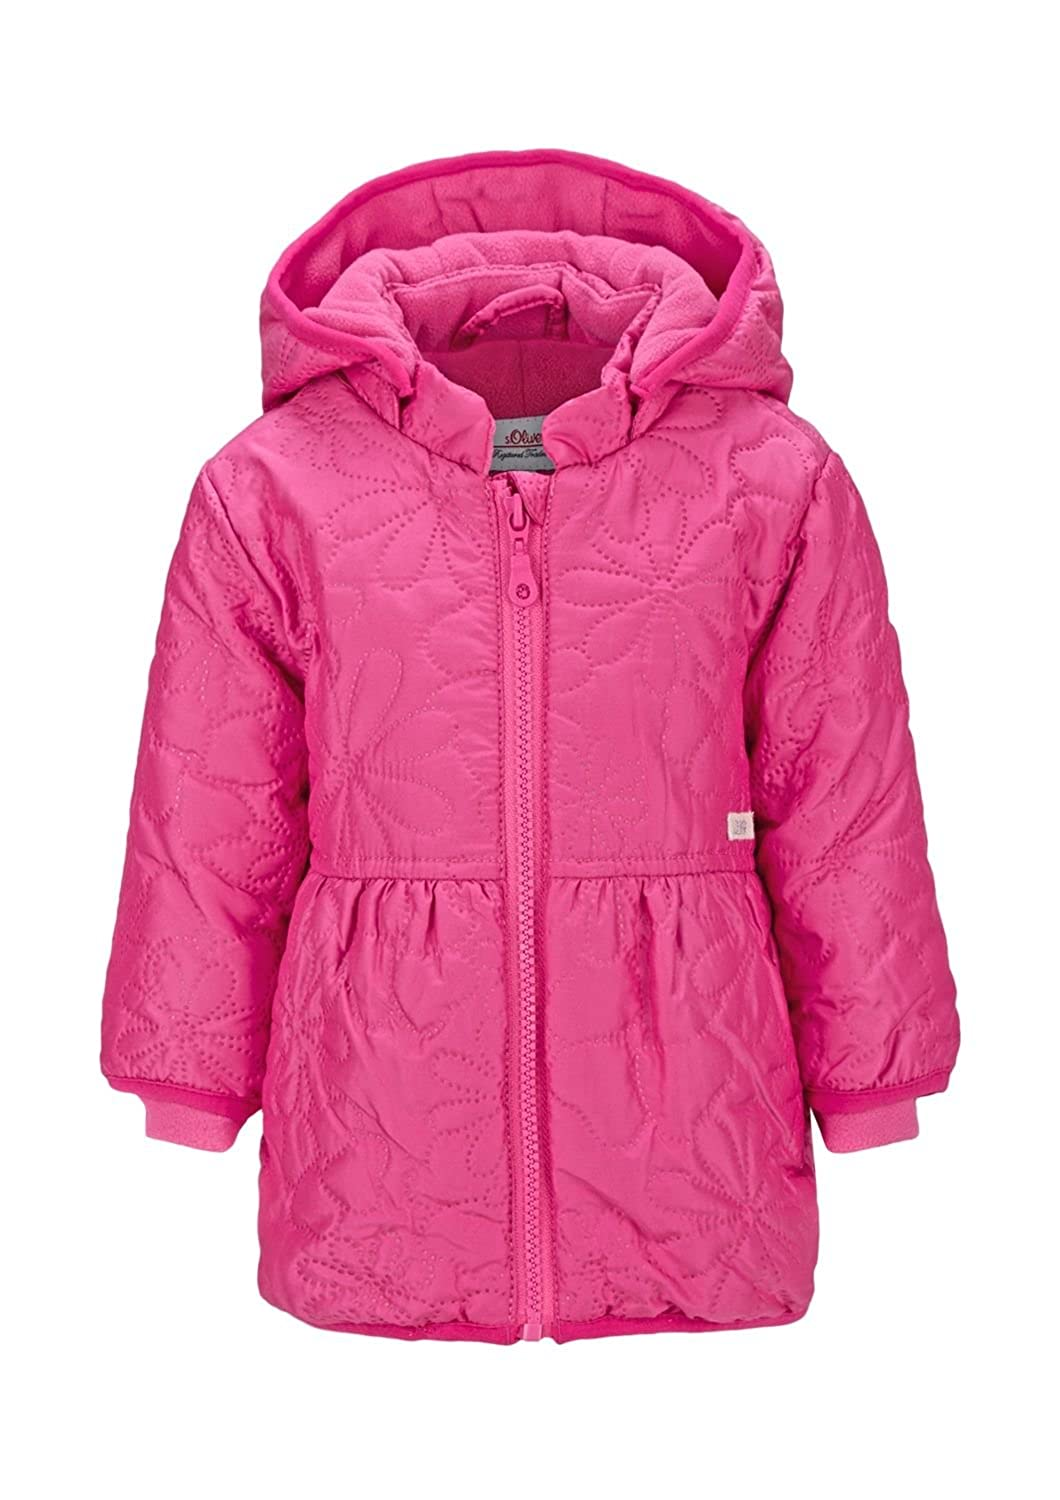 s.Oliver Baby Girls Quilted Jacket with Mittens Sizes 12M-24M